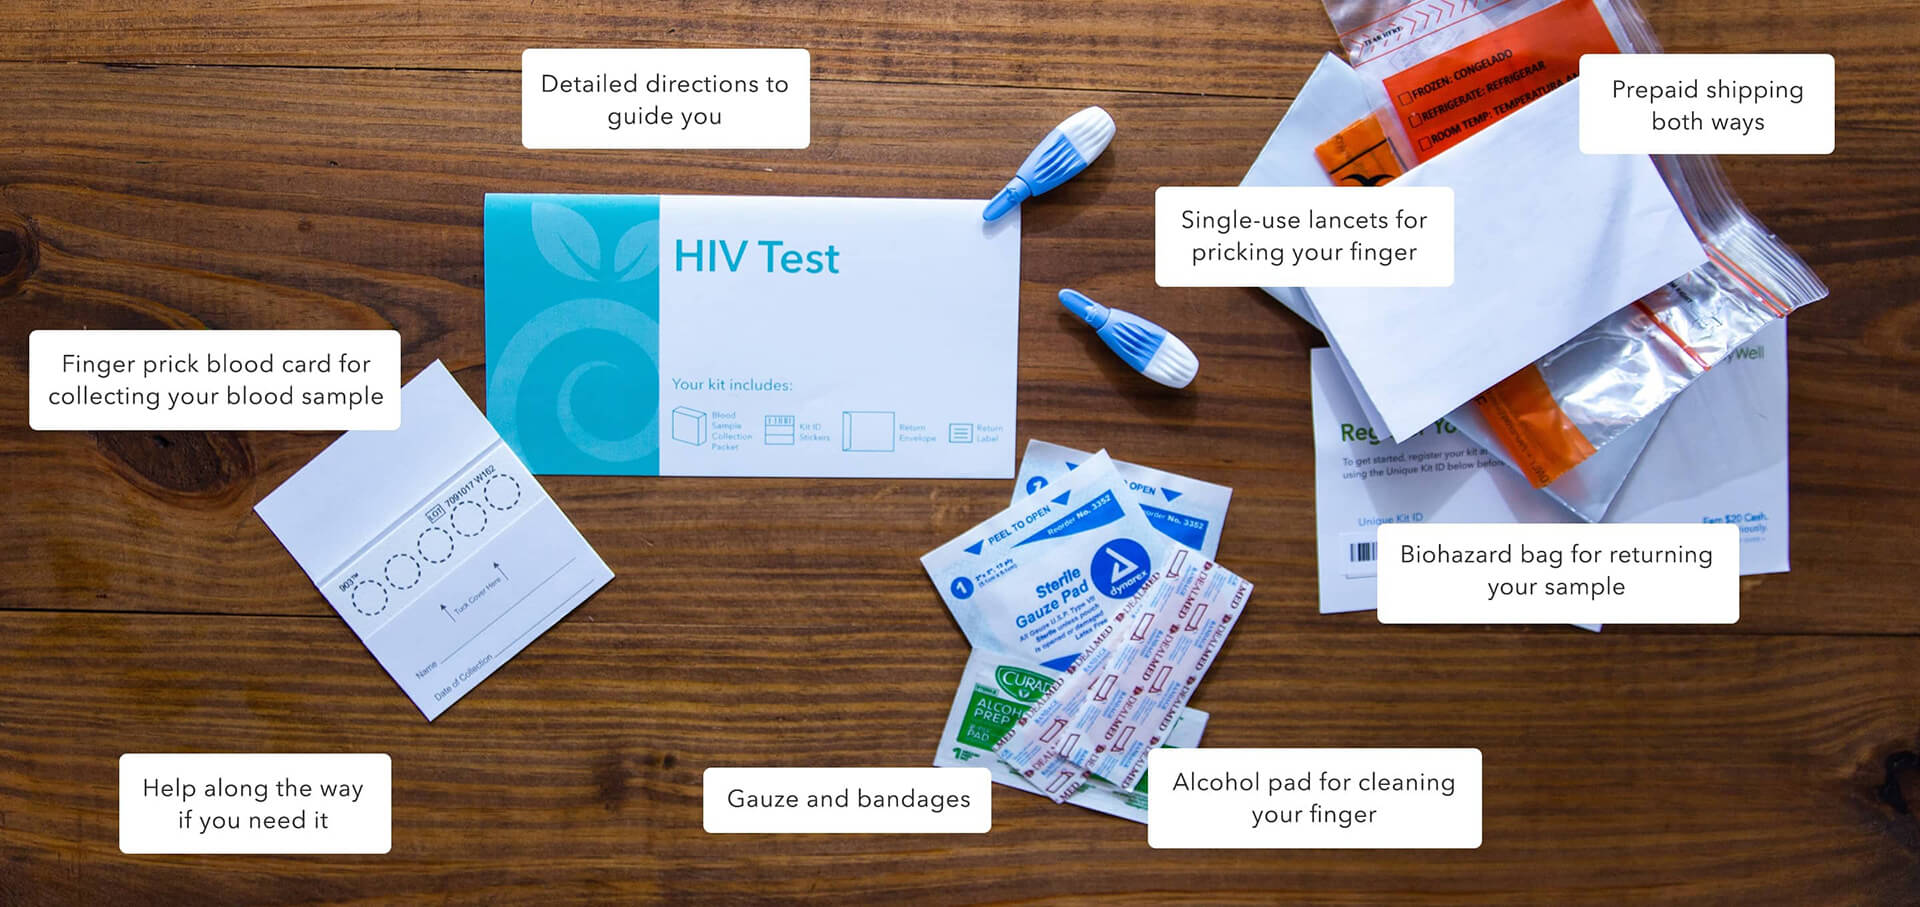 At-home HIV Test kit components